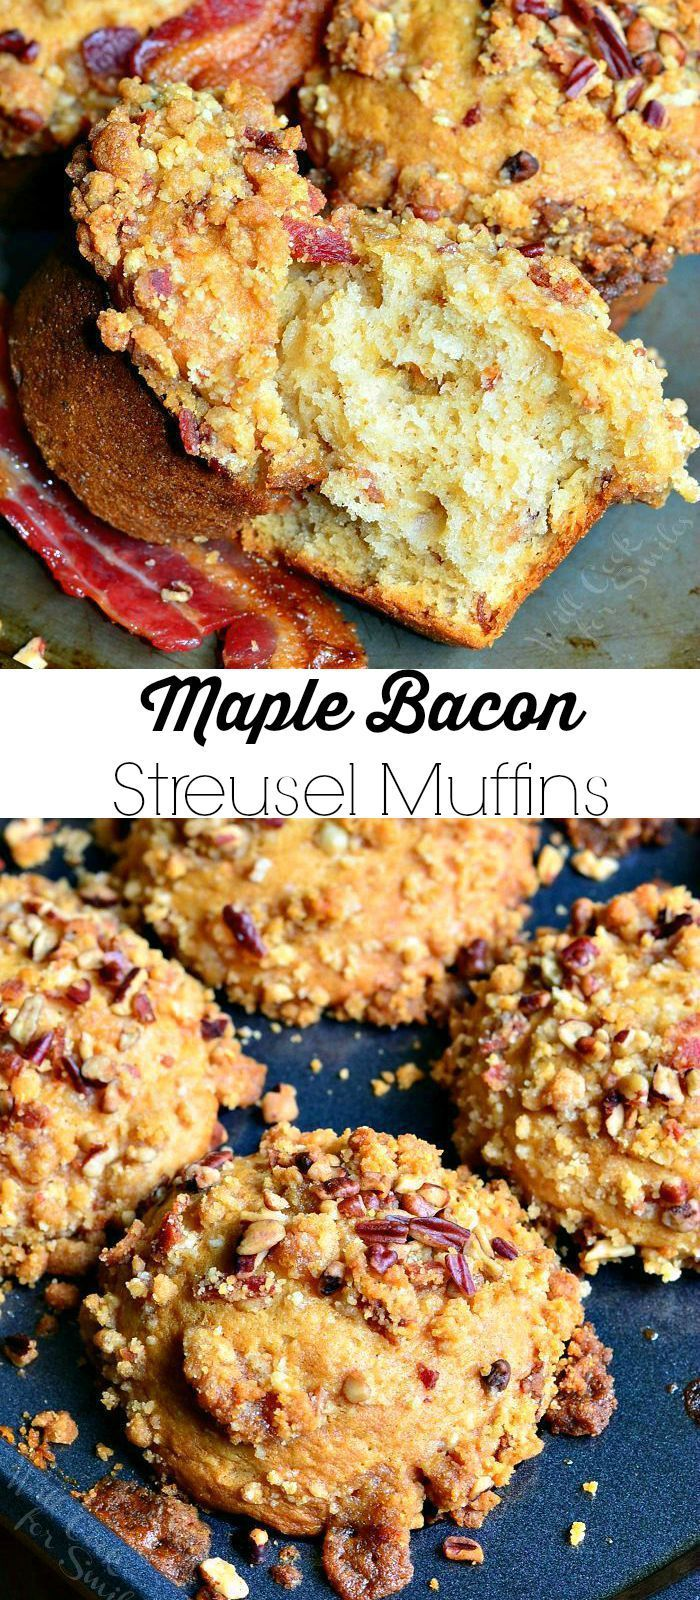 Maple Bacon Streusel Muffins   from willcookforsmiles.com